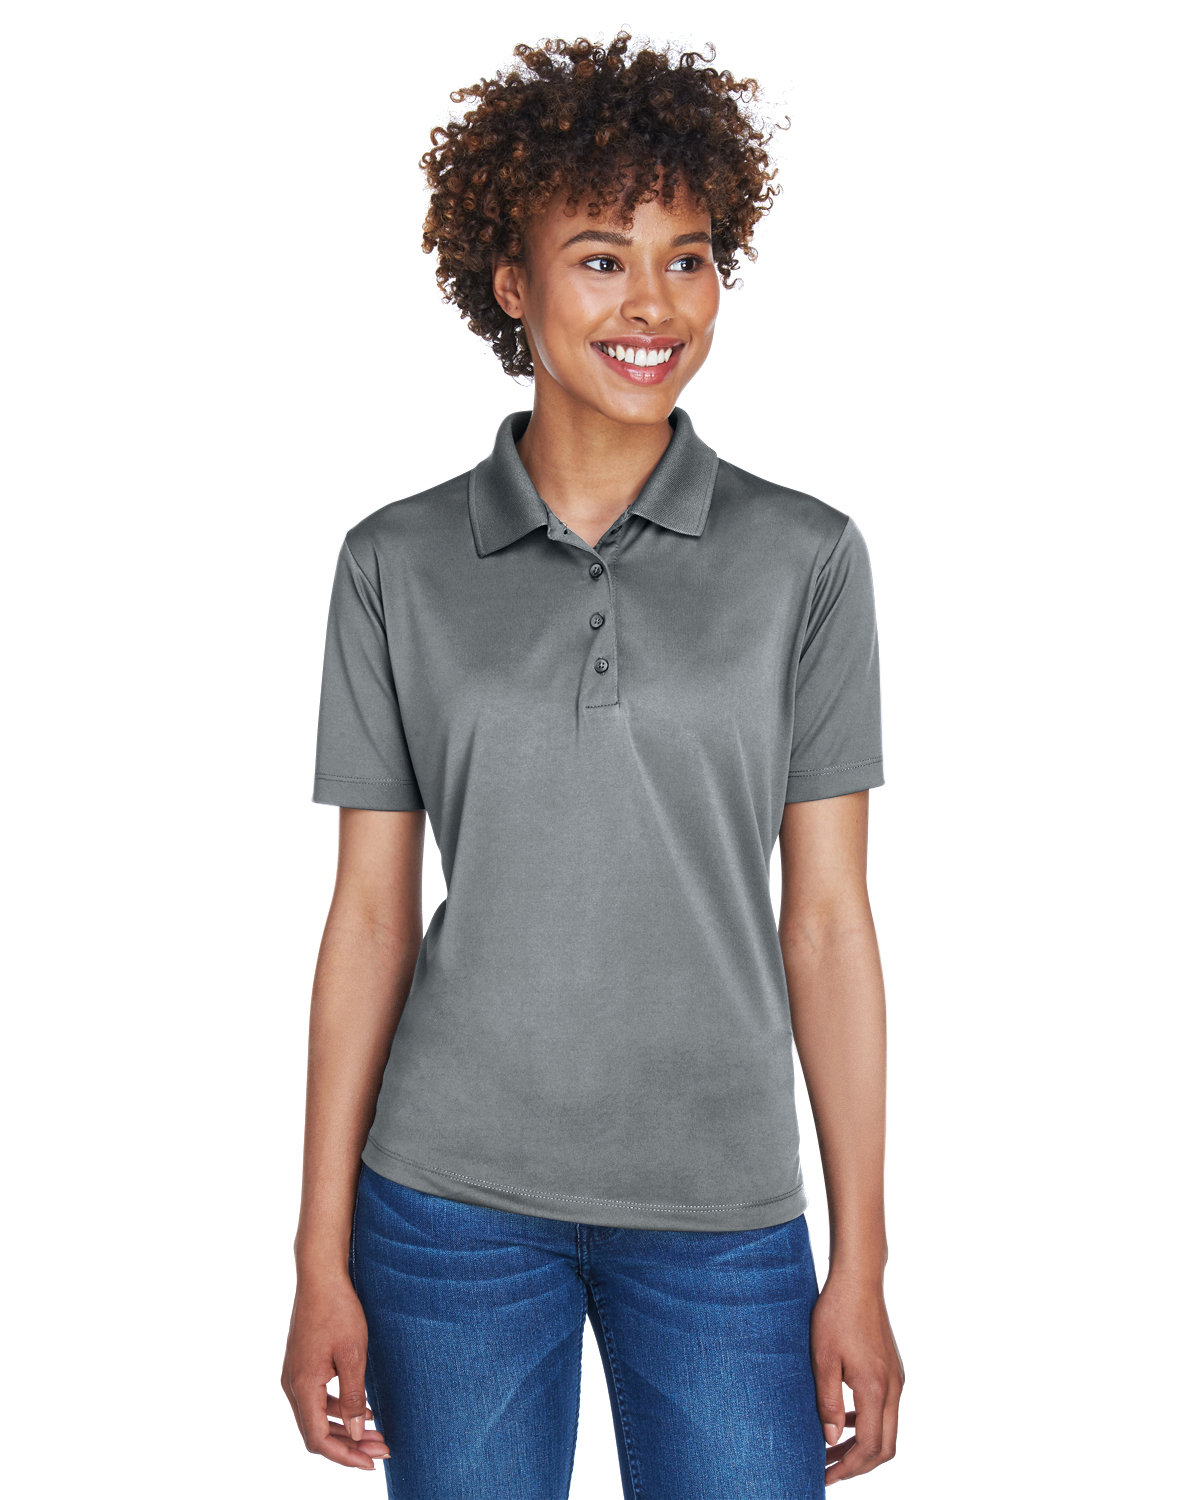 UltraClub Ladies' Cool & Dry 8-Star Elite Performance Interlock Polo CHARCOAL